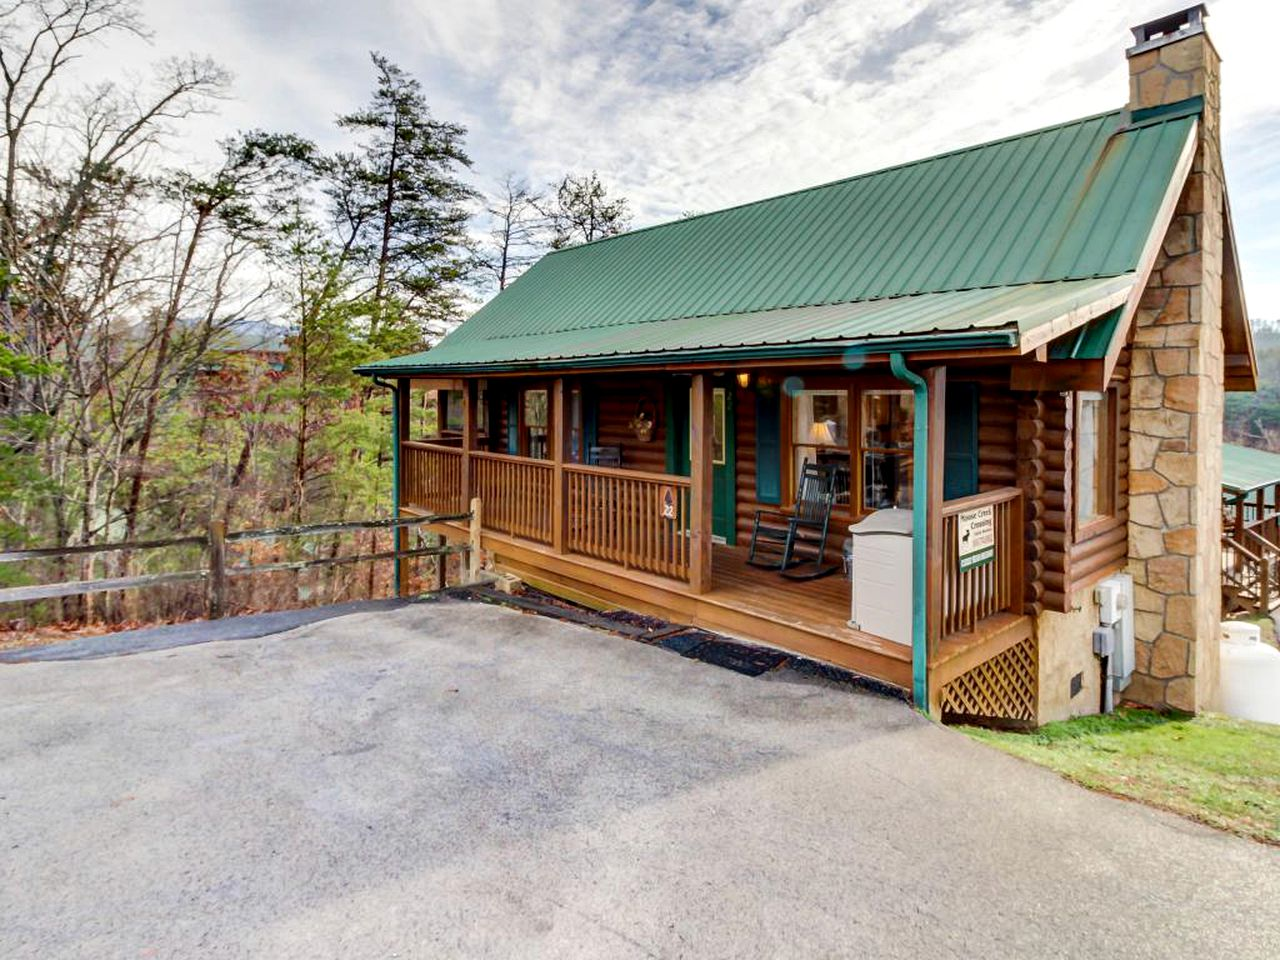 Cabins (Pigeon Forge, Tennessee, United States)